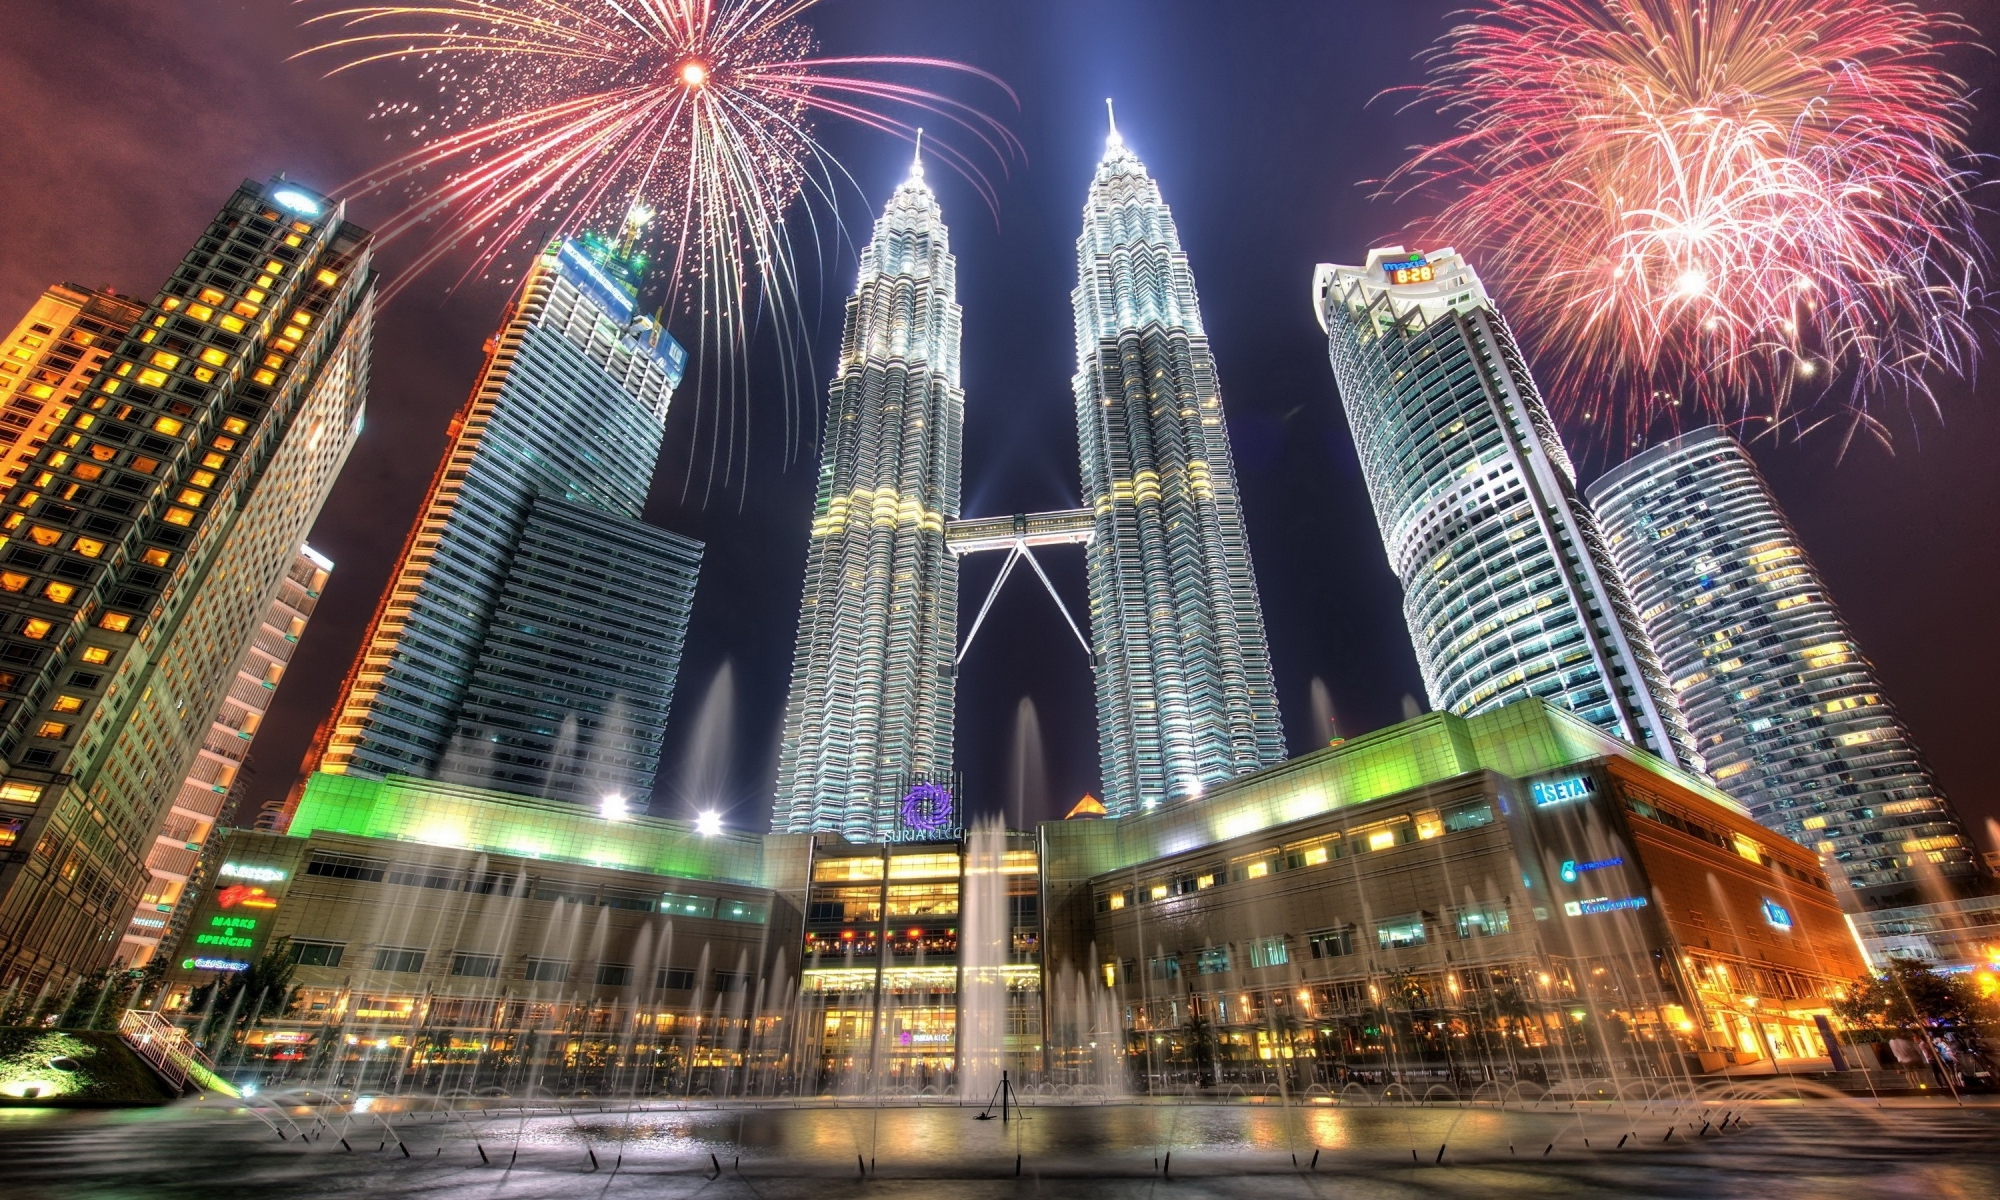 13 Parties to Celebrate New Year's Eve in Kuala Lumpur 2018